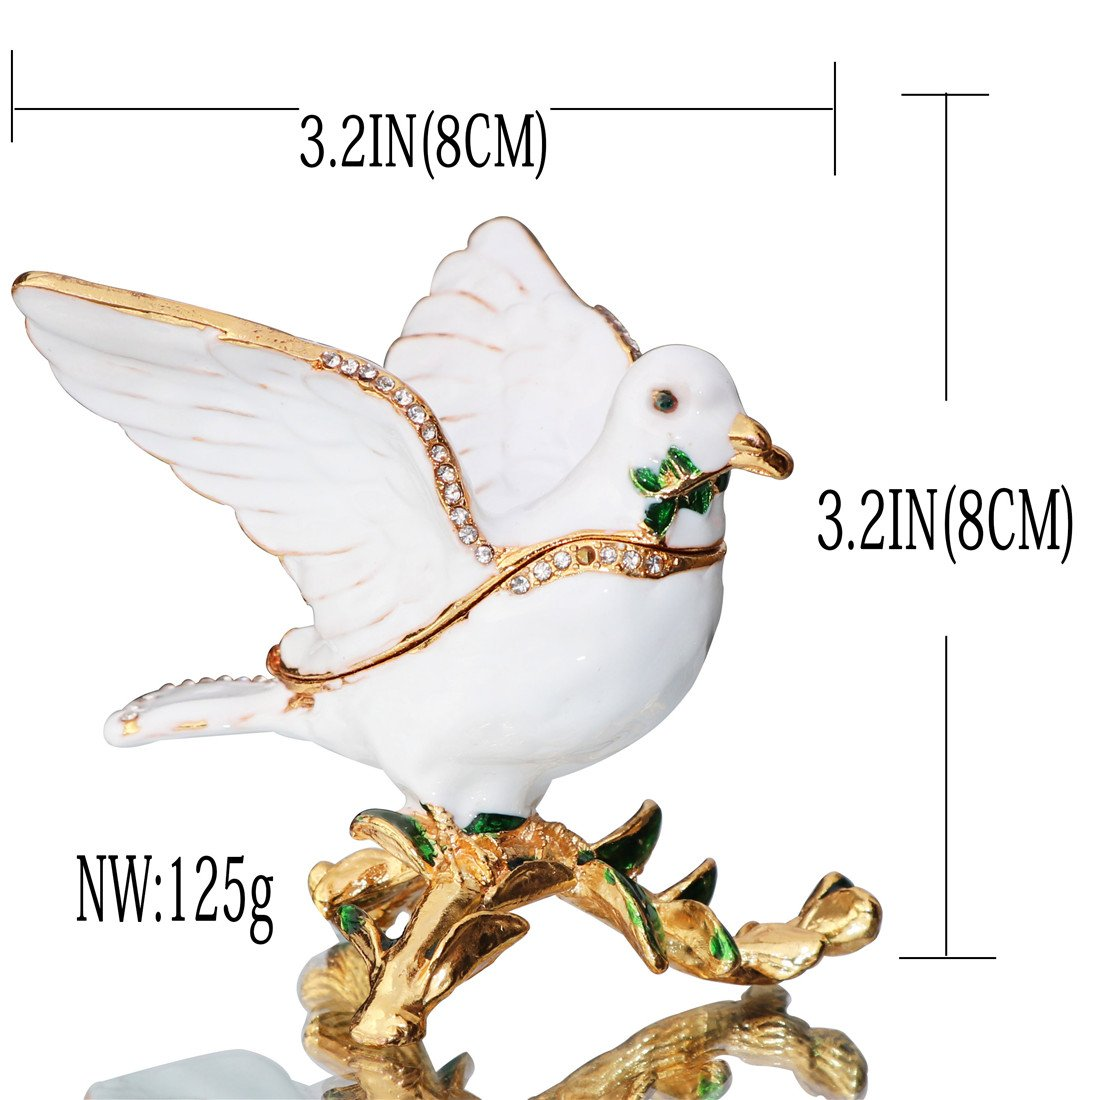 Waltz/&F Peace Dove Trinket Box Hinged Hand-painted Figurine Collectible Ring Holder with Gift Box Dongguan city guchu trading co ltd